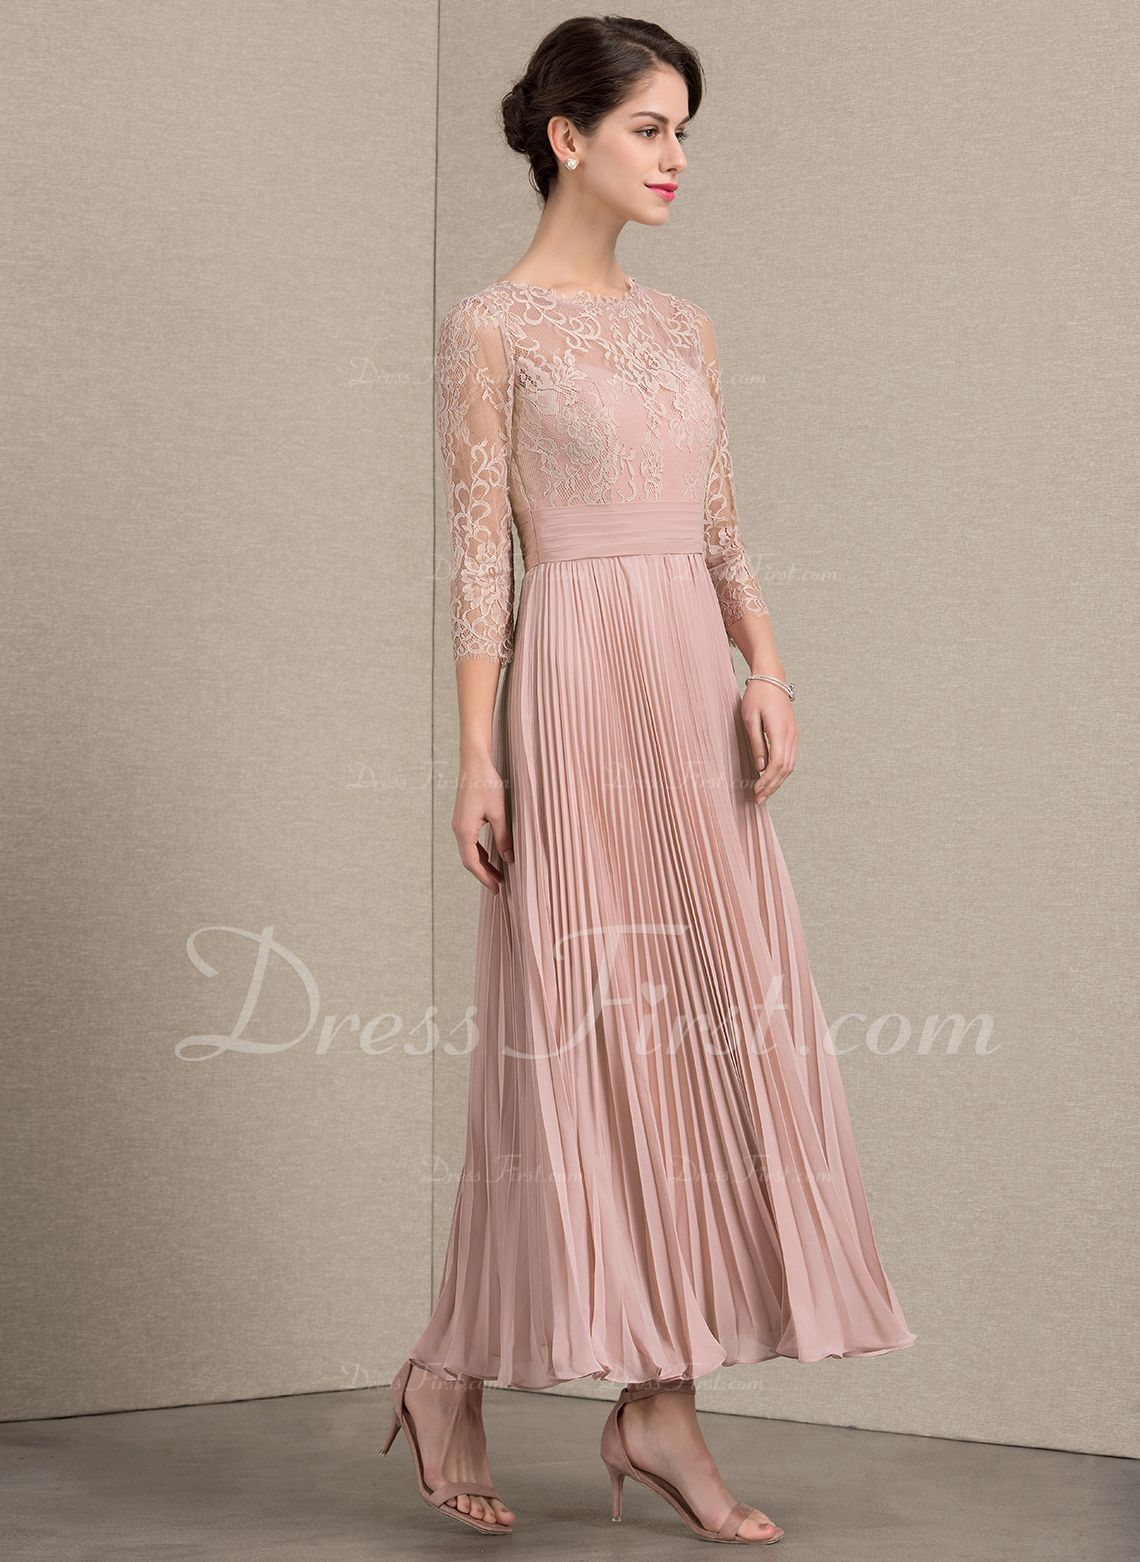 990ea5af70bf A-Line Princess Scoop Neck Ankle-Length Chiffon Lace Mother of the Bride  Dress With Pleated (008143377) - Mother of the Bride Dresses - DressFirst